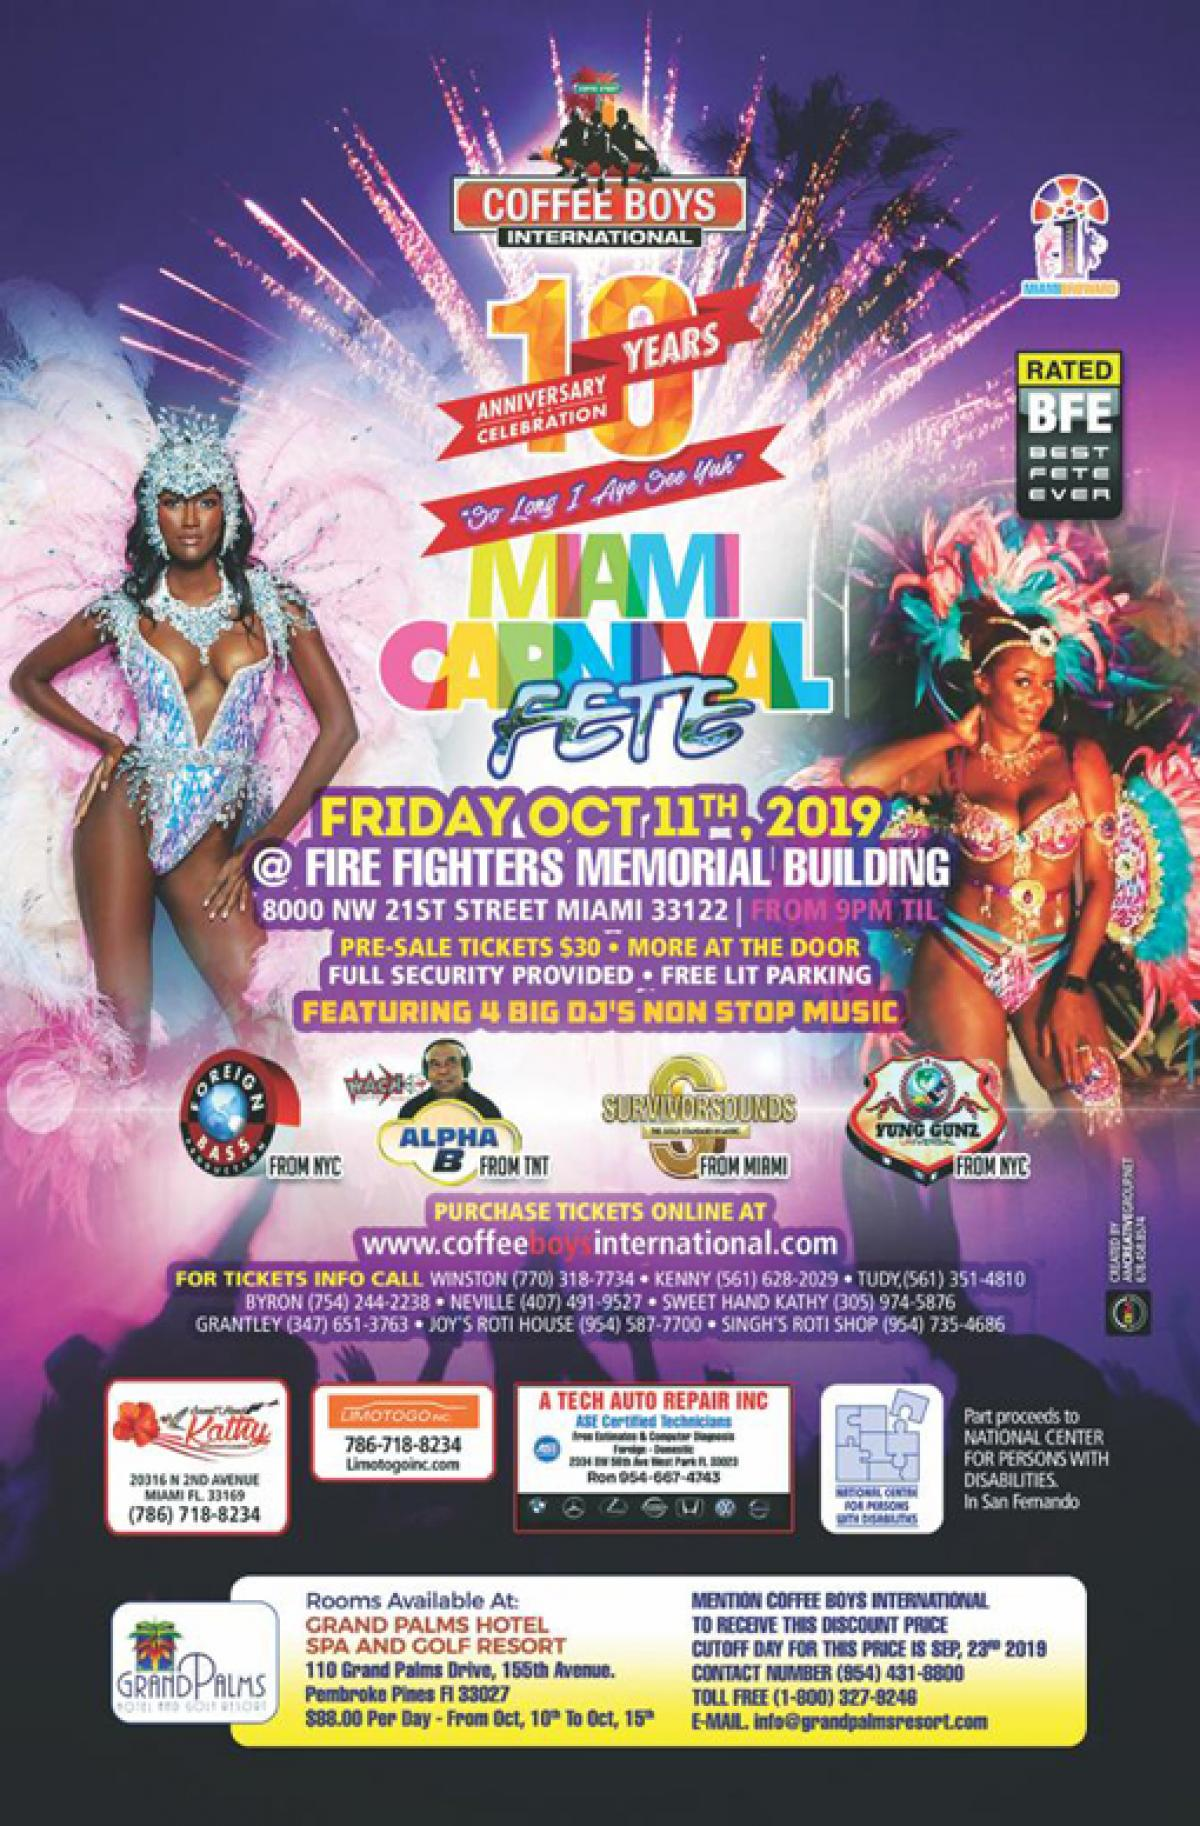 Carnival Fete flyer or graphic.